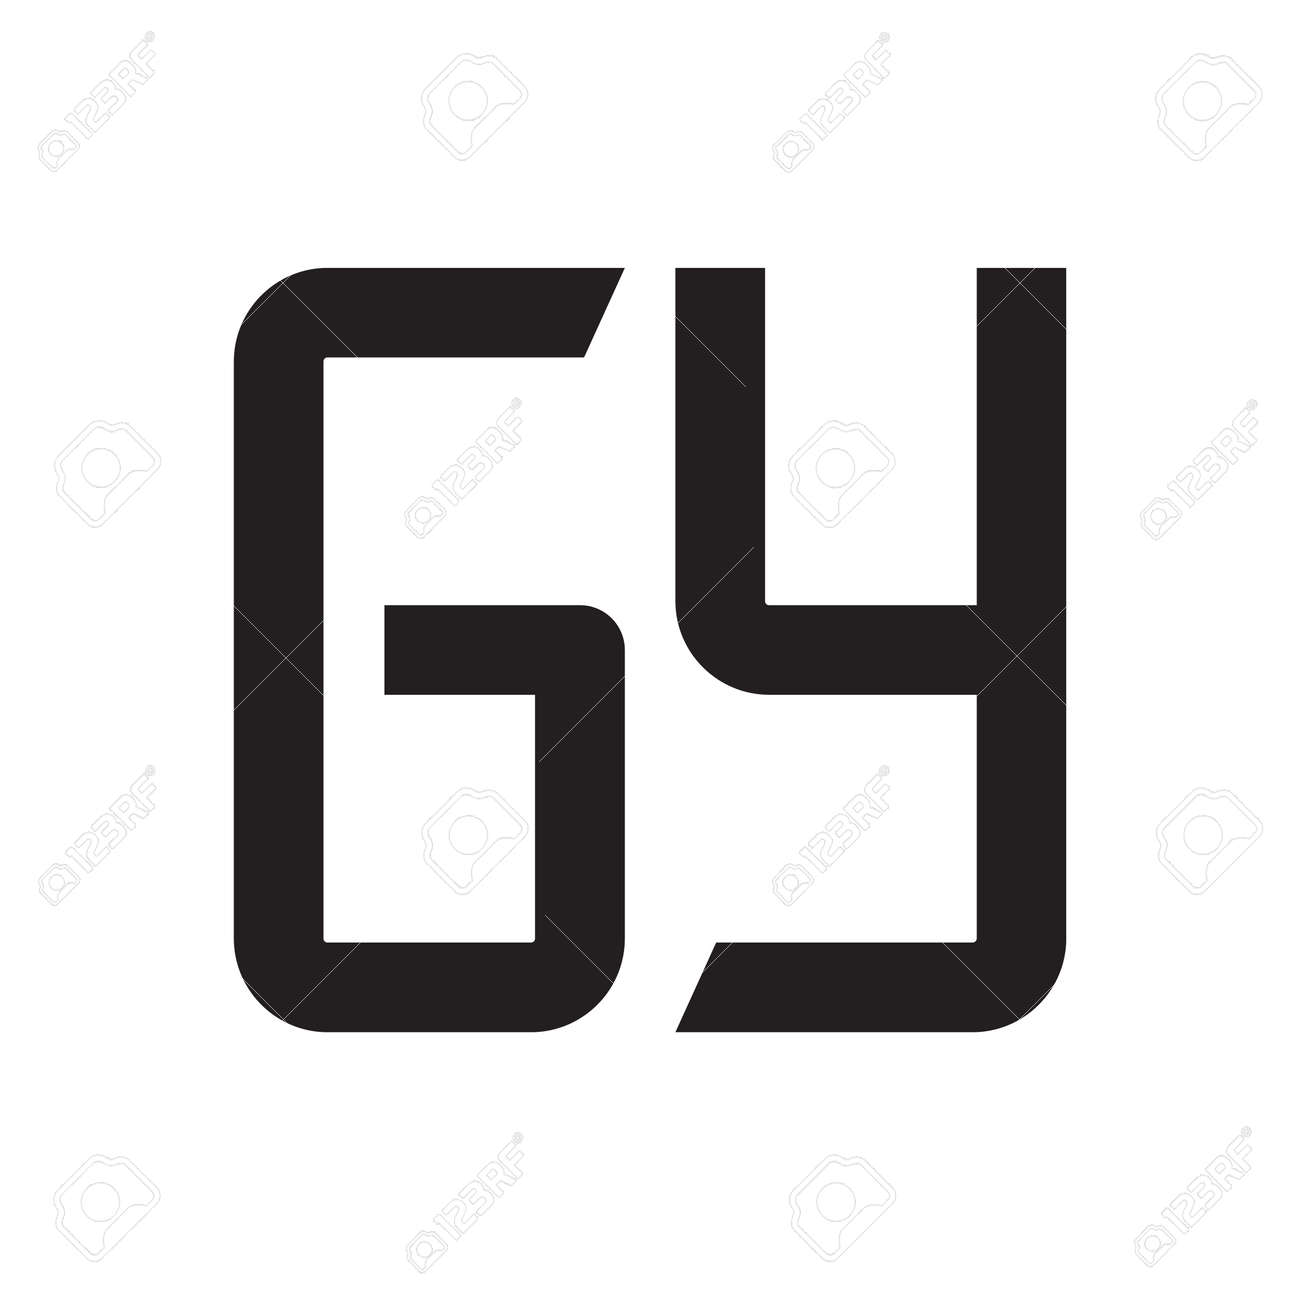 gy initial letter vector logo icon - 164321954